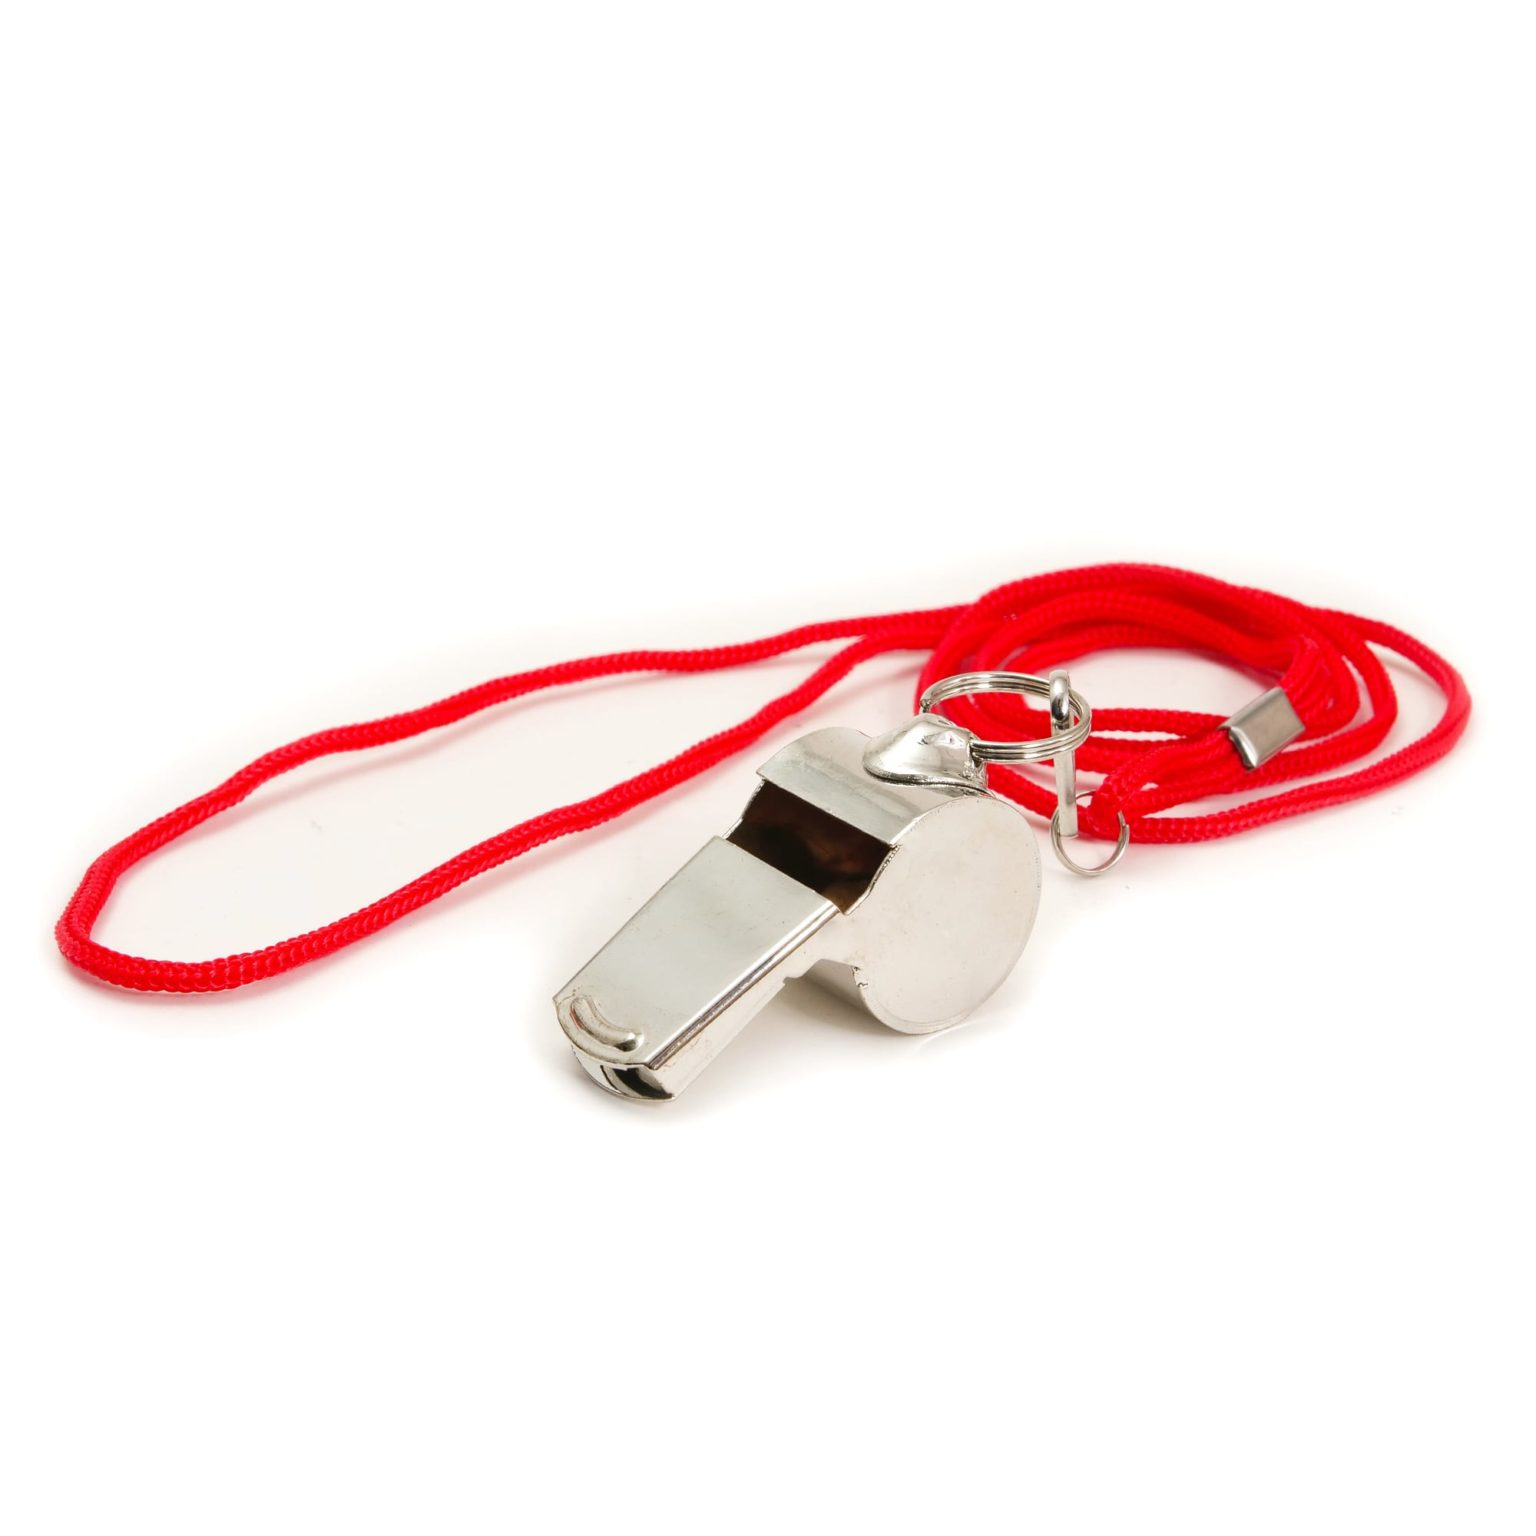 Metal Adventurer's Whistle and Lanyard